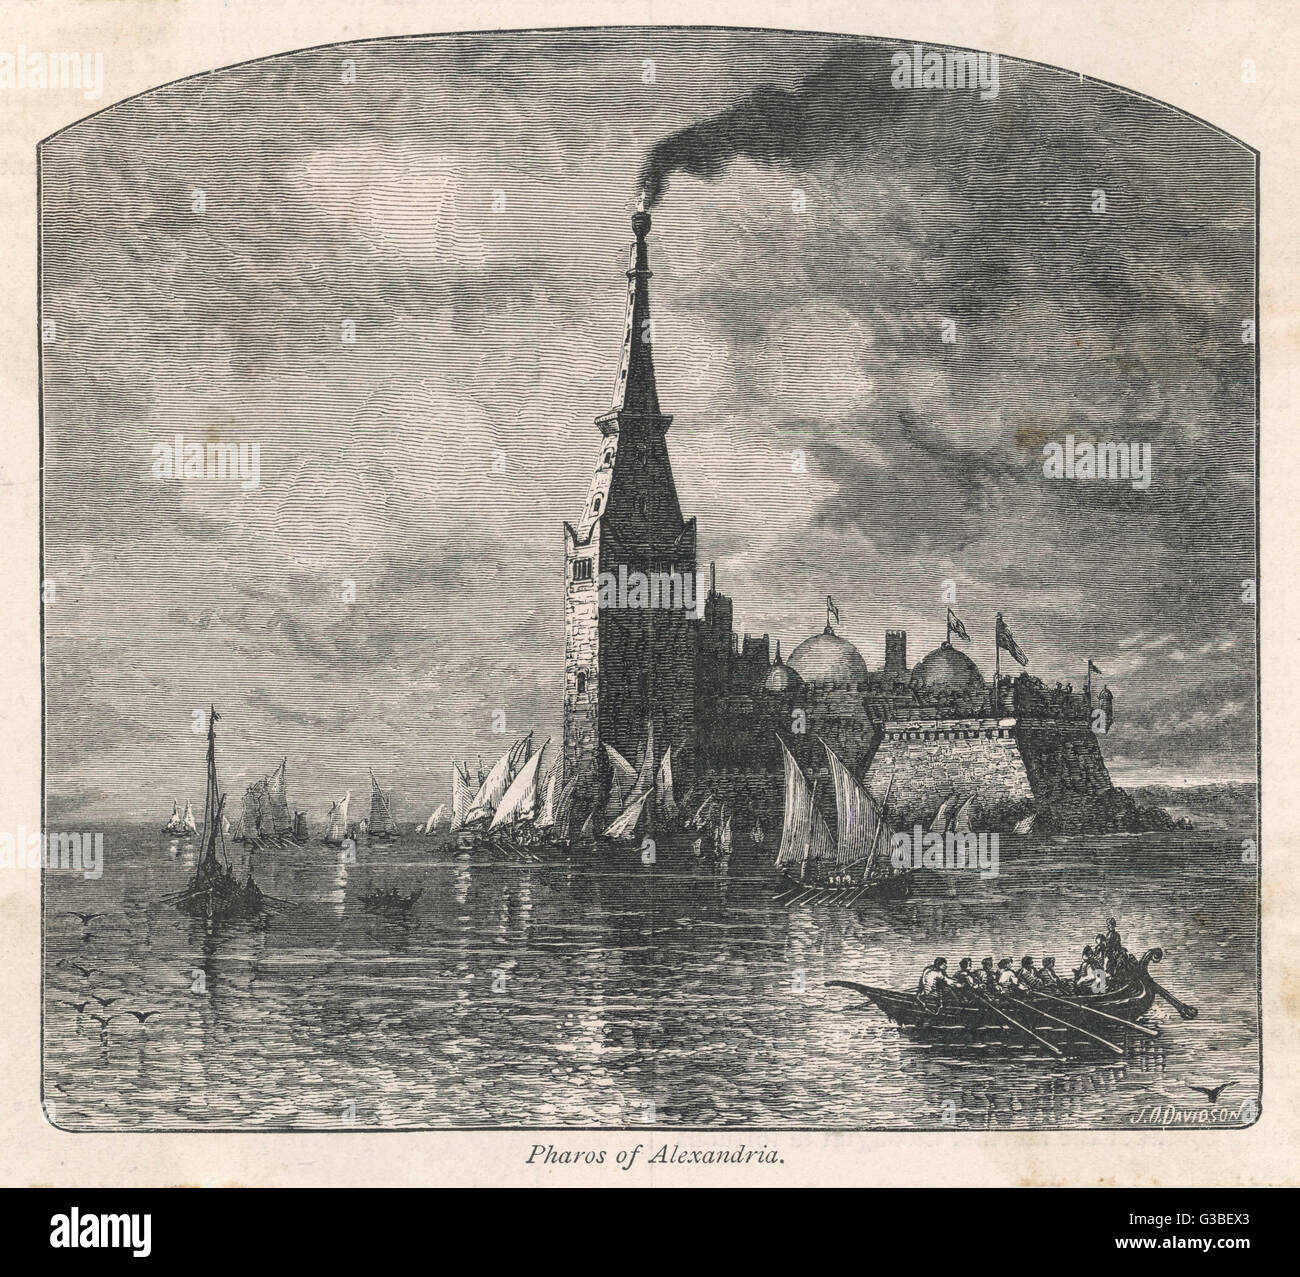 The Pharos of Alexandria, its  burning light guiding passing  boats        Date: Ancient - Stock Image